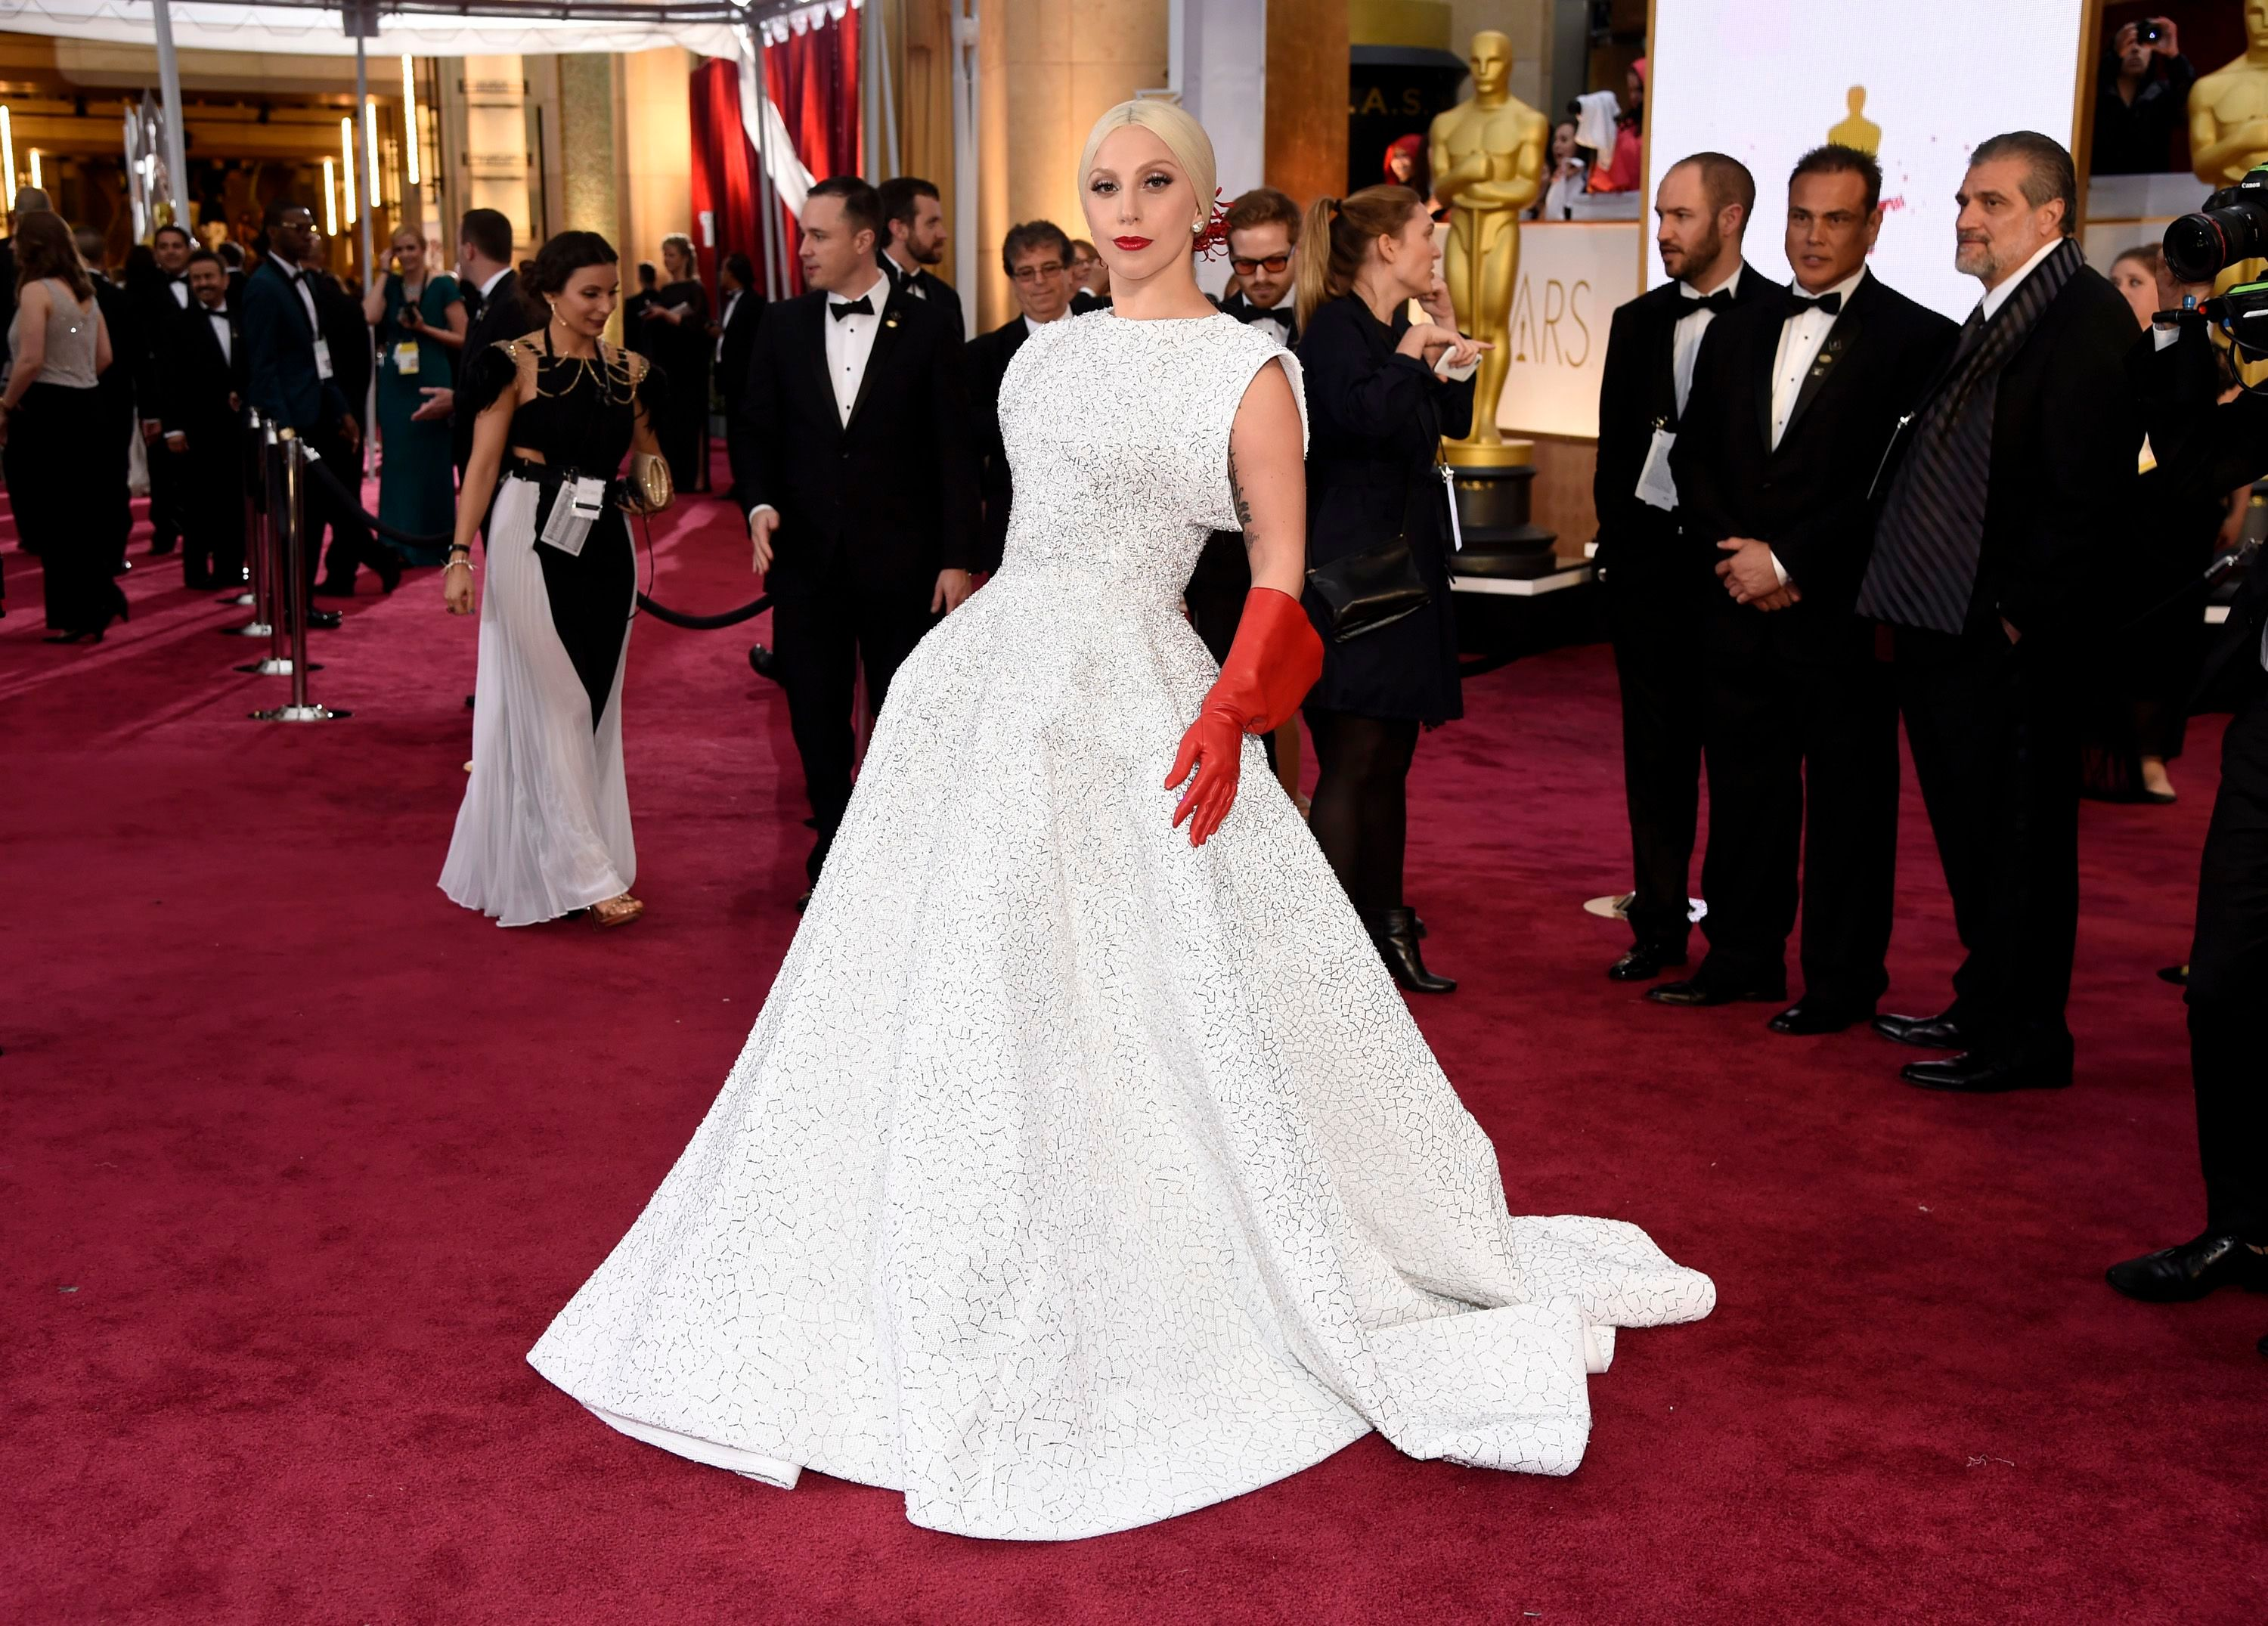 Lady Gaga arrives at the Oscars, at the Dolby Theatre in Los Angeles87th Academy Awards - Arrivals, Los Angeles, USA - 22 Feb 2015